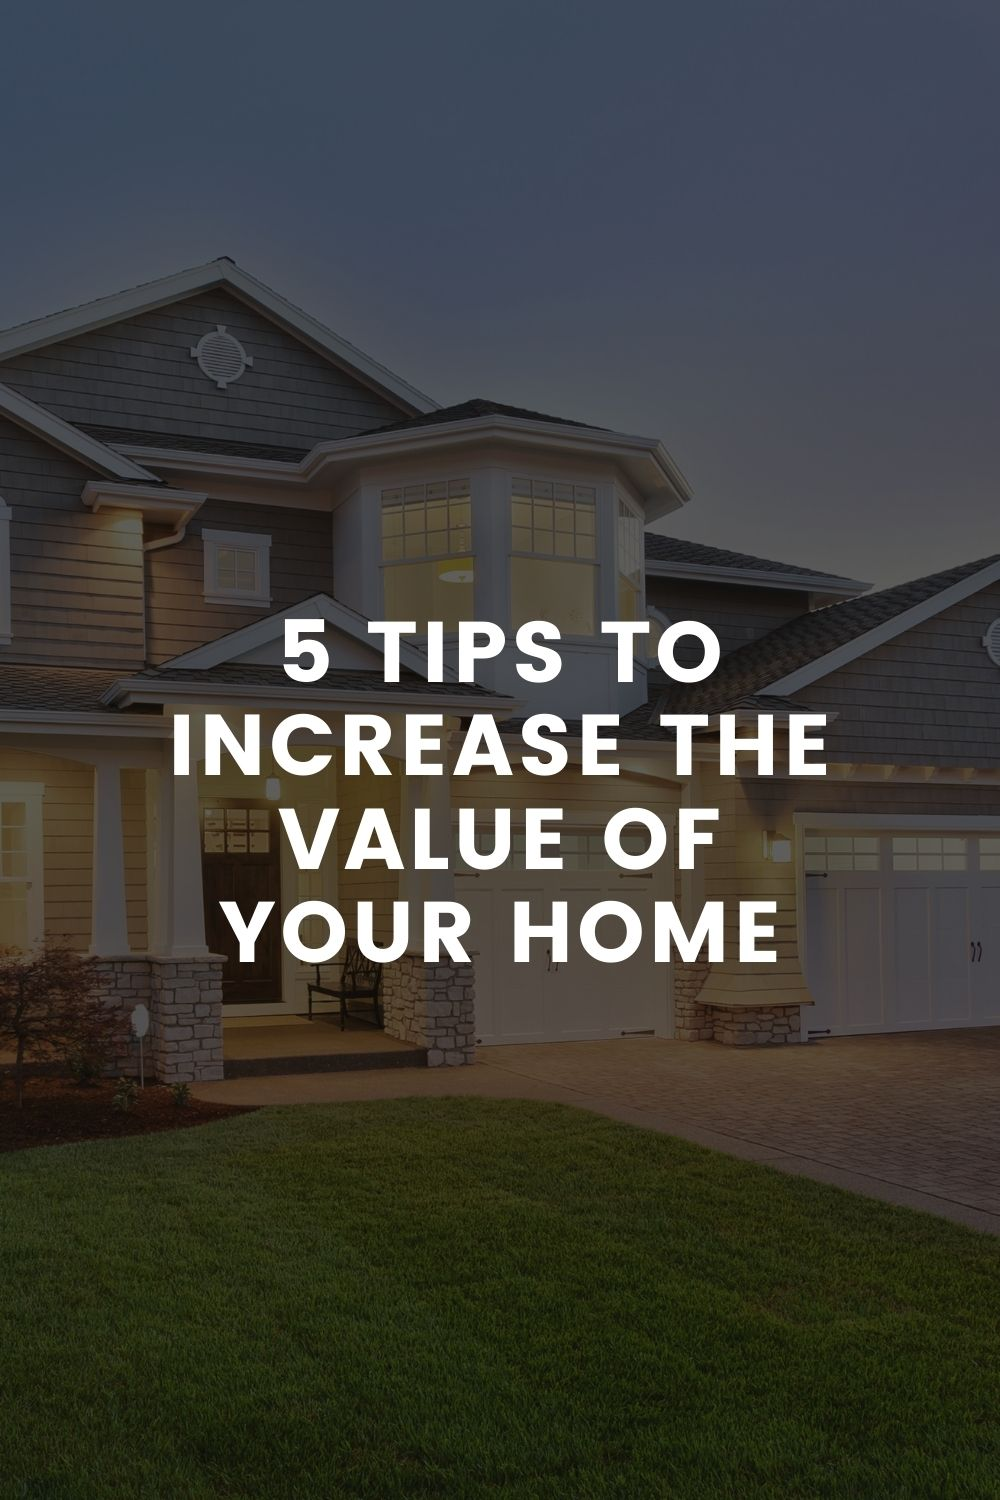 Five Tips To Increase The Value Of Your Home